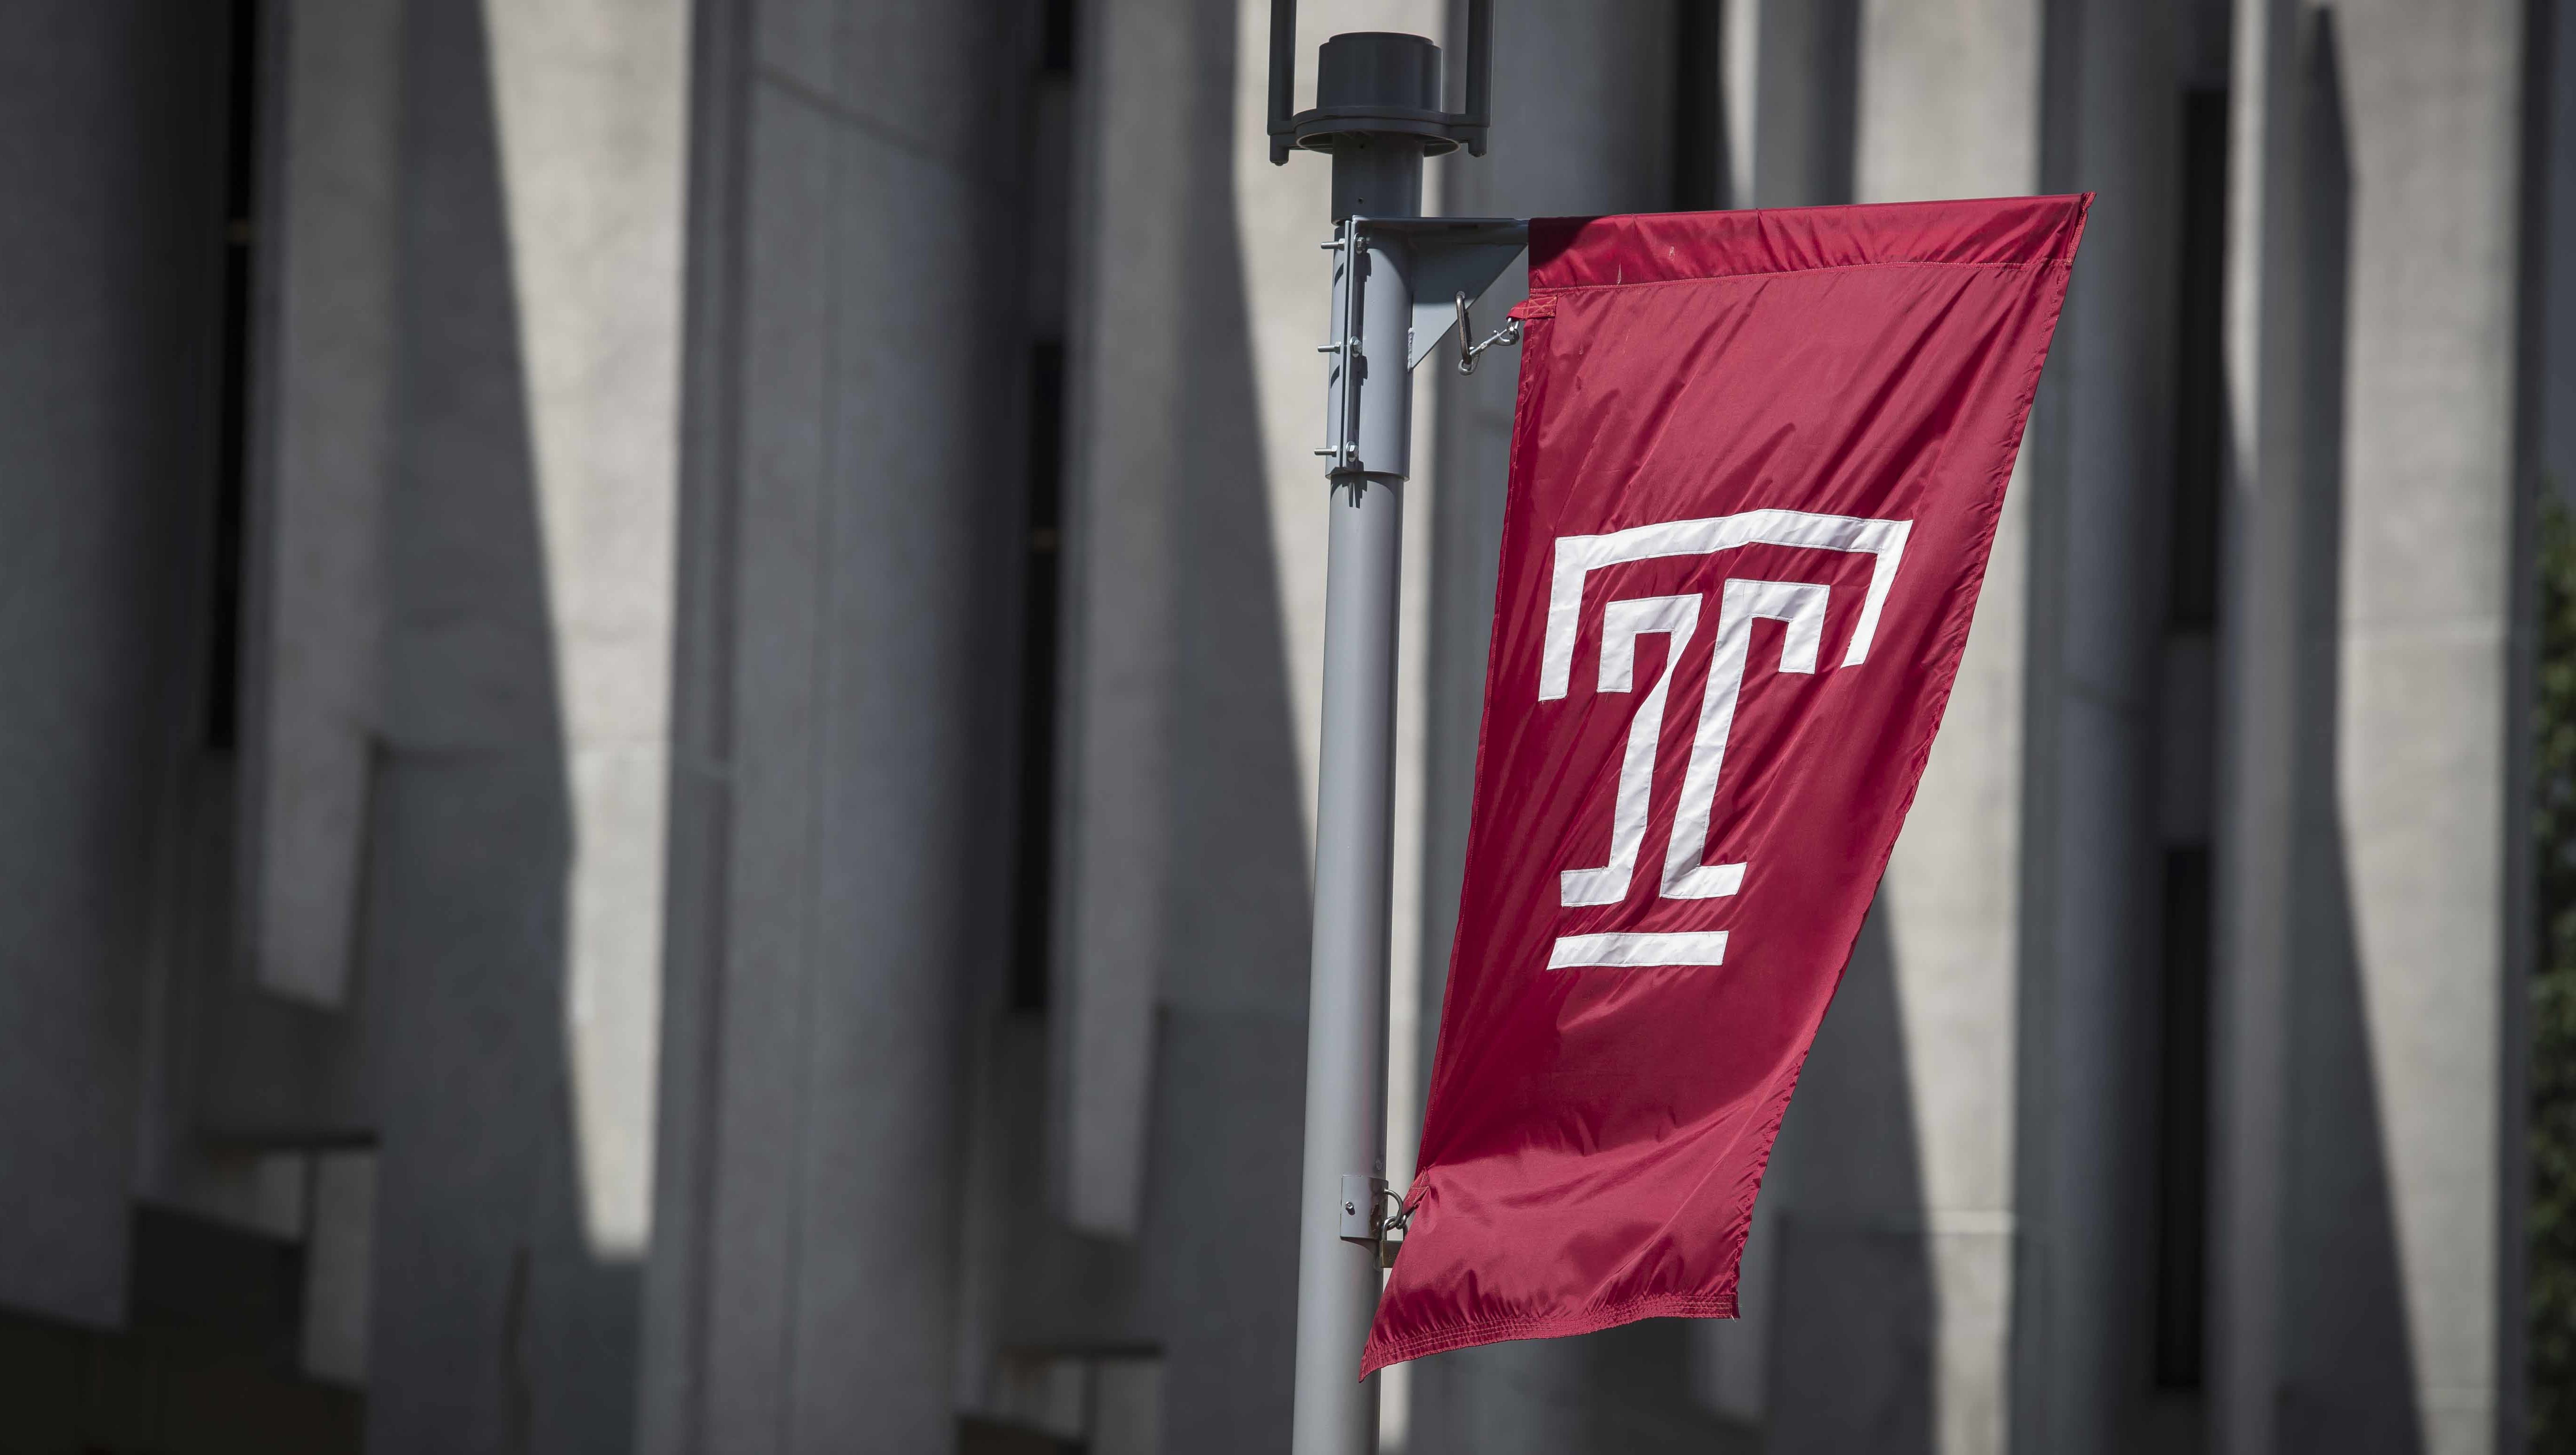 Temple T flag